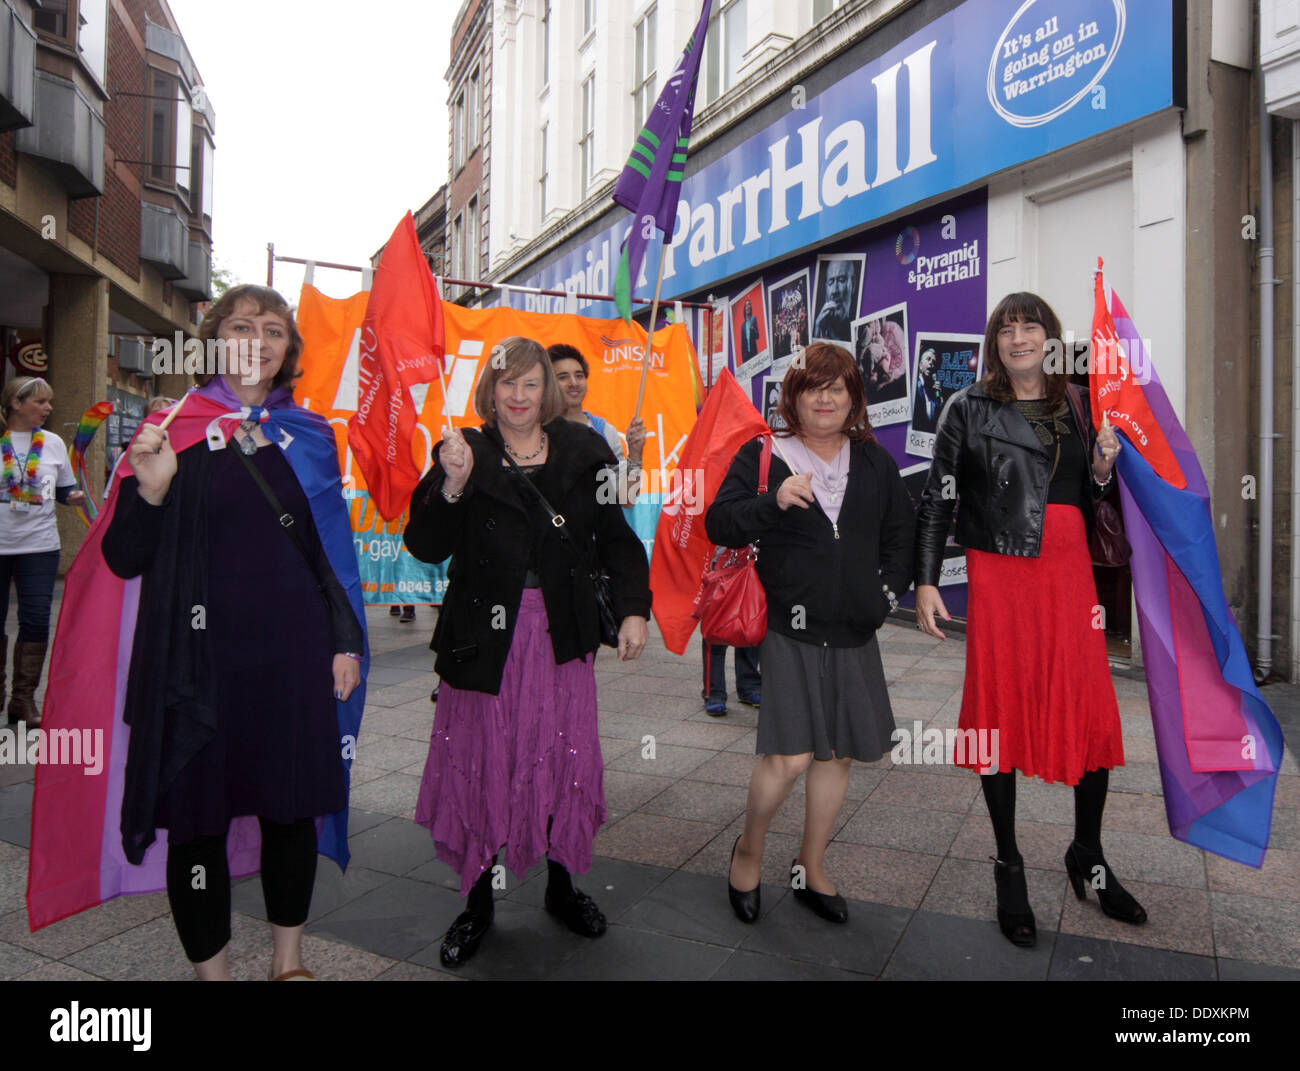 England,WA1,UK,GB,Great,britain,British,gay,lesbian,trans,transgender,LGBT,Bi,Bi-sexual,bisexual,people,men,women,marching,rights,WarringtonPride,march,marches,WBC,borough,council,unitary,local,authority,GGHT,golden,gates,housing,trust,events,celebrating,event,annual,yearly,flag,7th,transvestites,gotonysmith,Warington,gayrights,Sep,Sept,Stonewall,town,demonstrate,demonstrators,demonstrator,Liberation,Front,GLF,gayness,gayboy,boy,boys,girls,girl,population,world,worldpride,Canal,St,street,rugby,player,players,team,cup,rugbyworldcup,07/09/2013,09/07/2013,Rylands,Palmyra,Sq,square,Bond,Bridge,WarringtonLGBT,LGBTWarrington,members,volunteers,stigma,services,service,HIV,aids,sexuality,sex,lgbtwarrington.co.uk,WA1,1JL,WA11JL,Sankey,St,Buy Pictures of,Buy Images Of